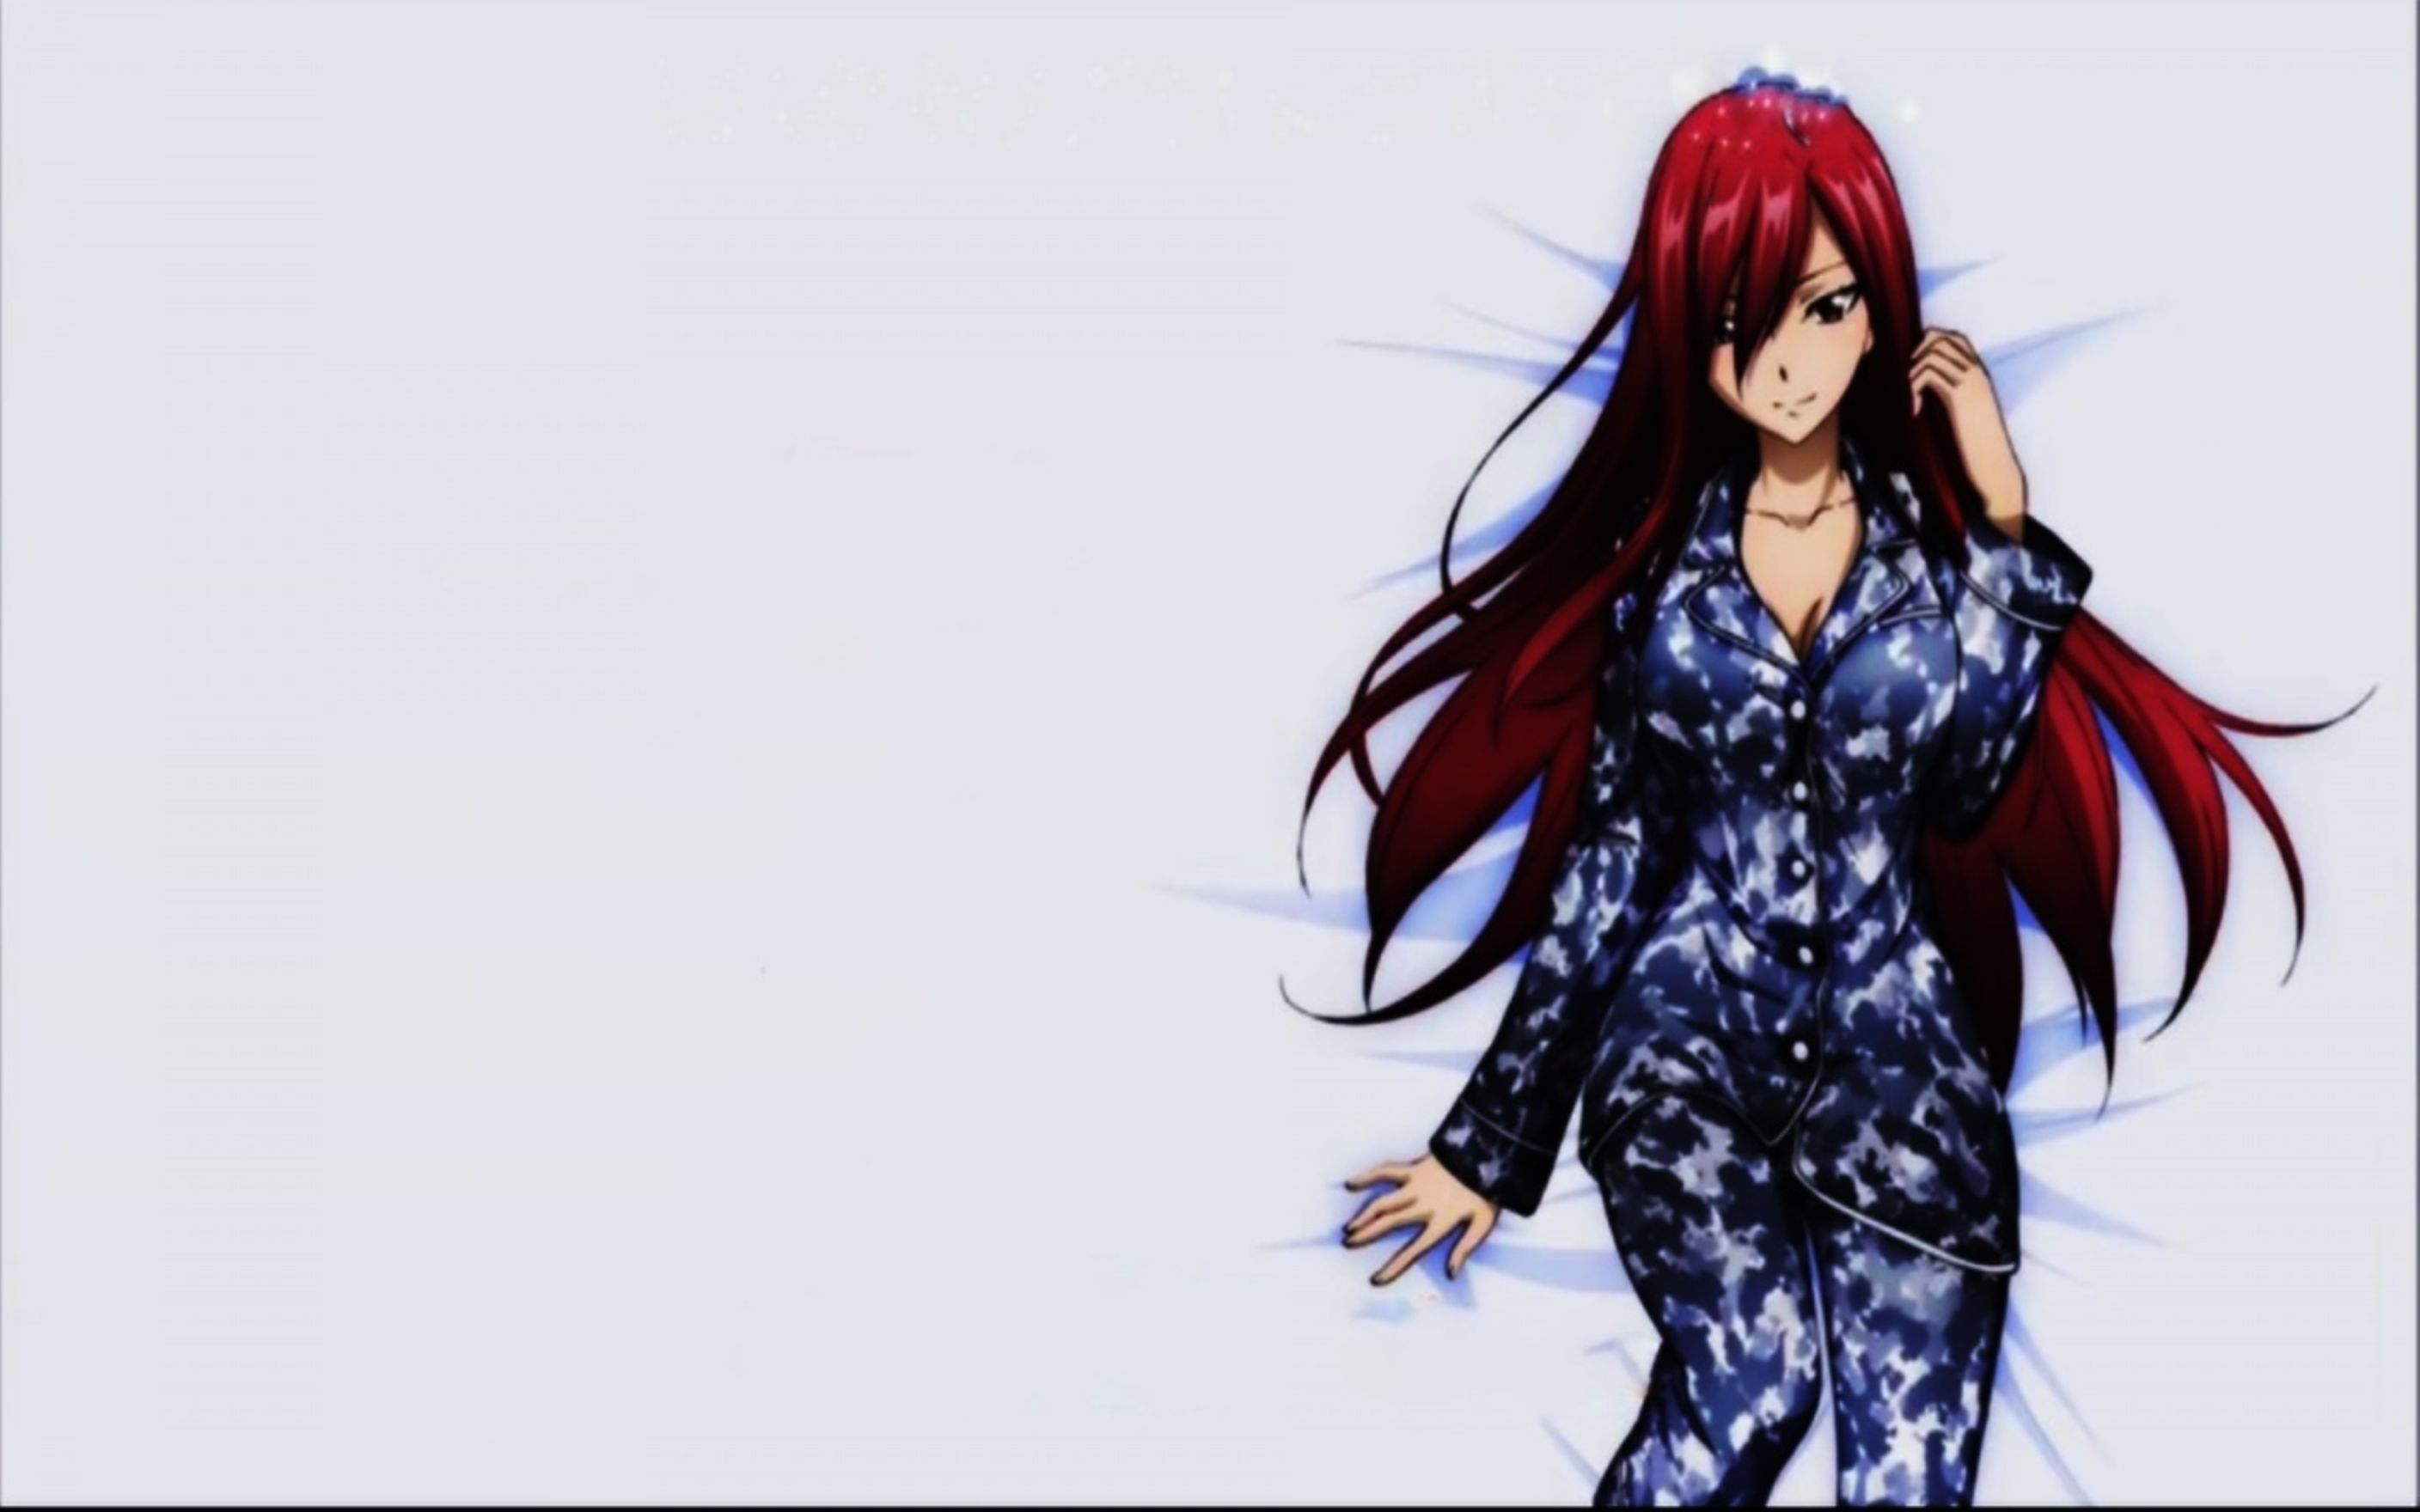 Download free HD Erza Cute Awesome Anime Wallpaper, image